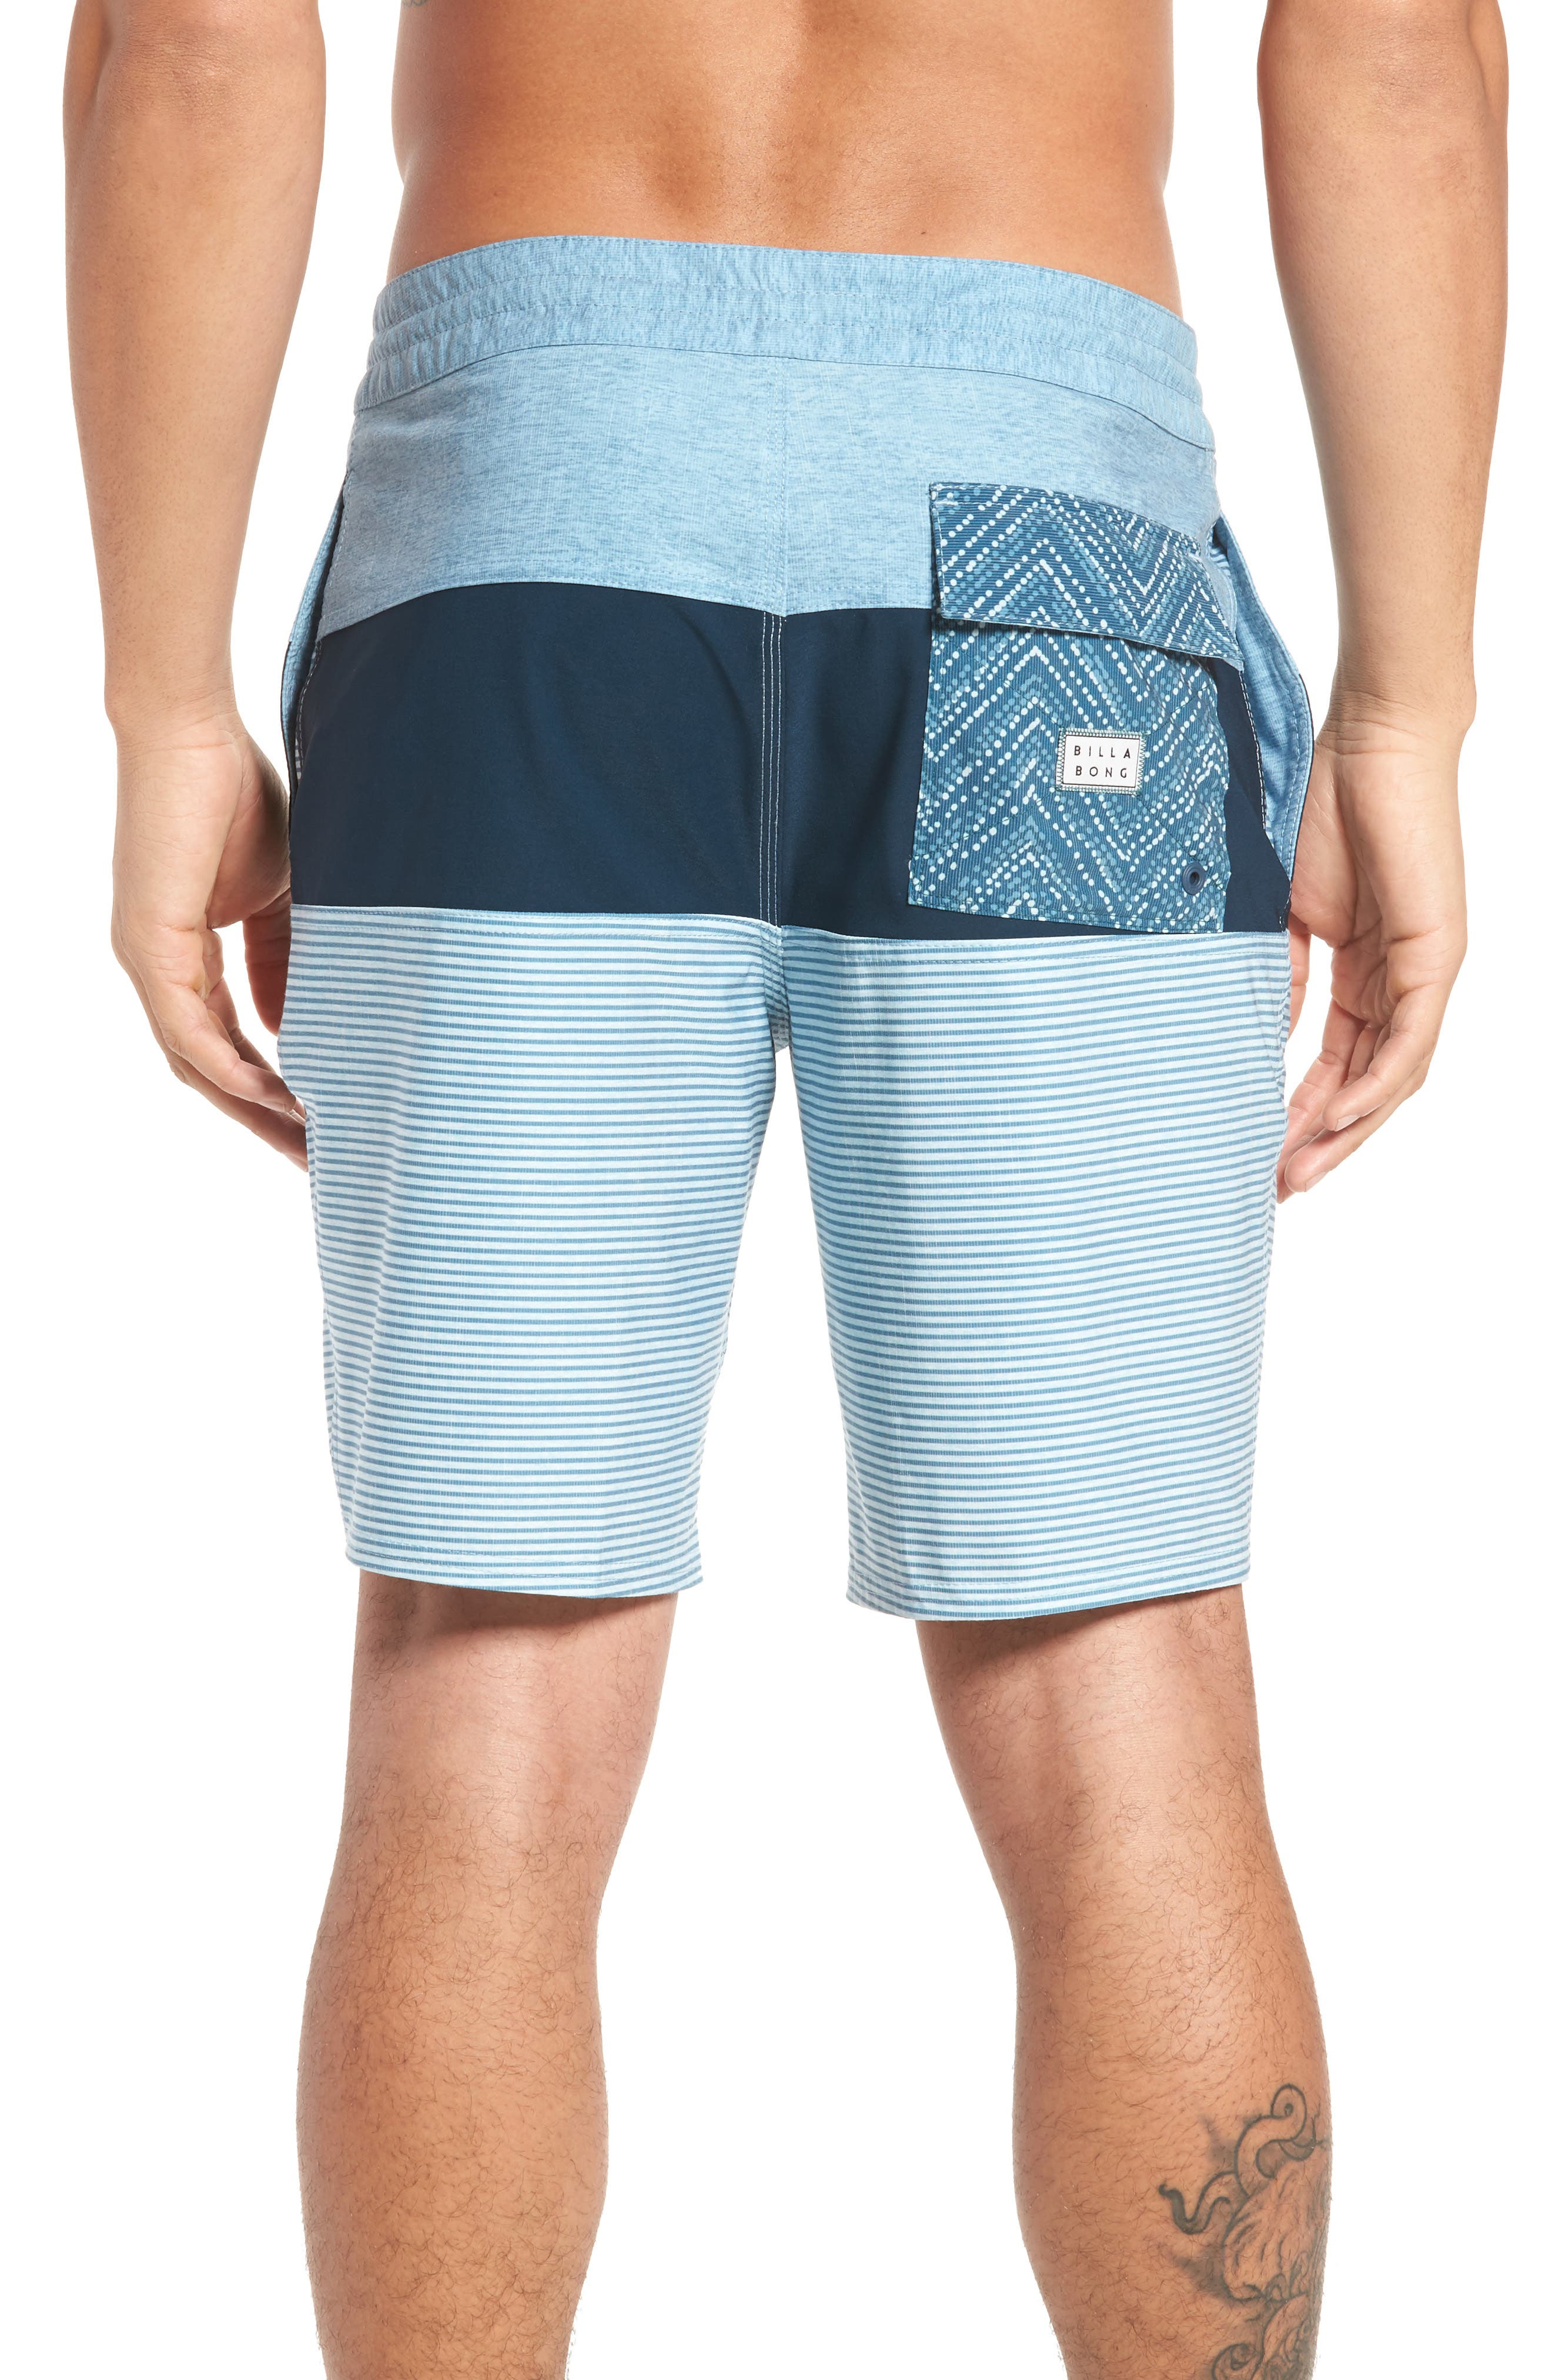 Tribong LT Board Shorts,                             Alternate thumbnail 5, color,